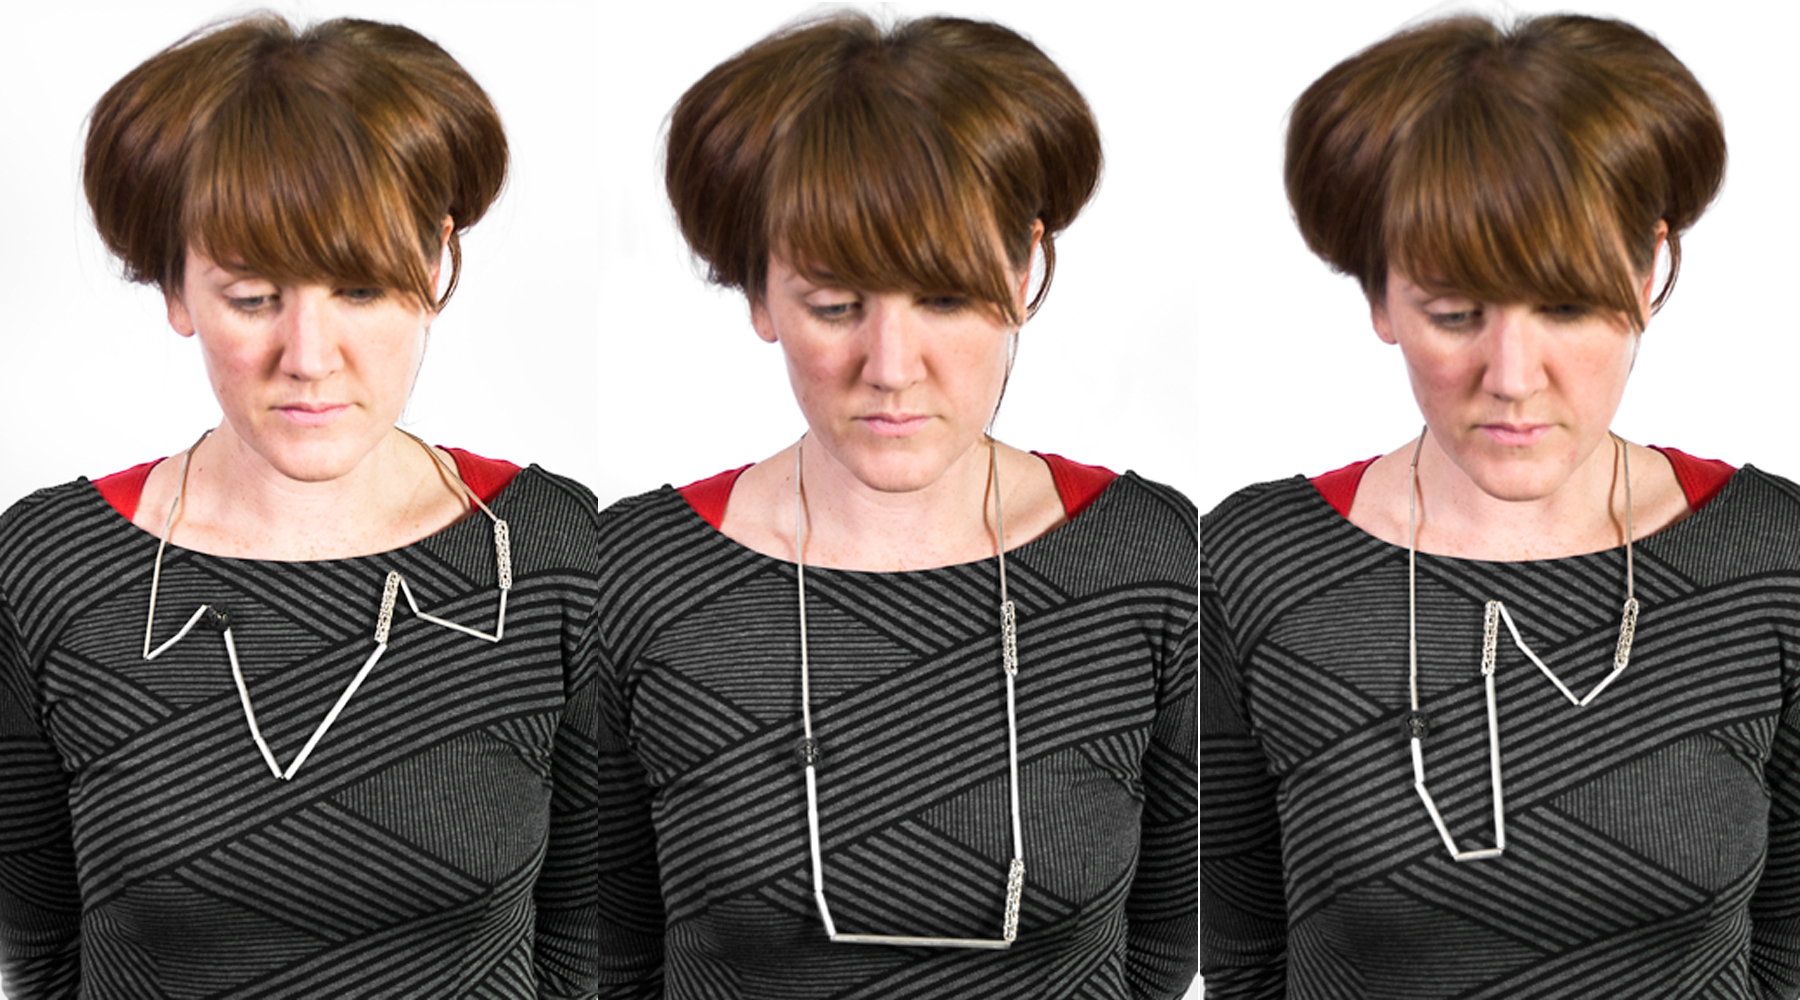 Sarah Holden wearing her Do-It-Yourself necklace. Image courtesy of the artist.